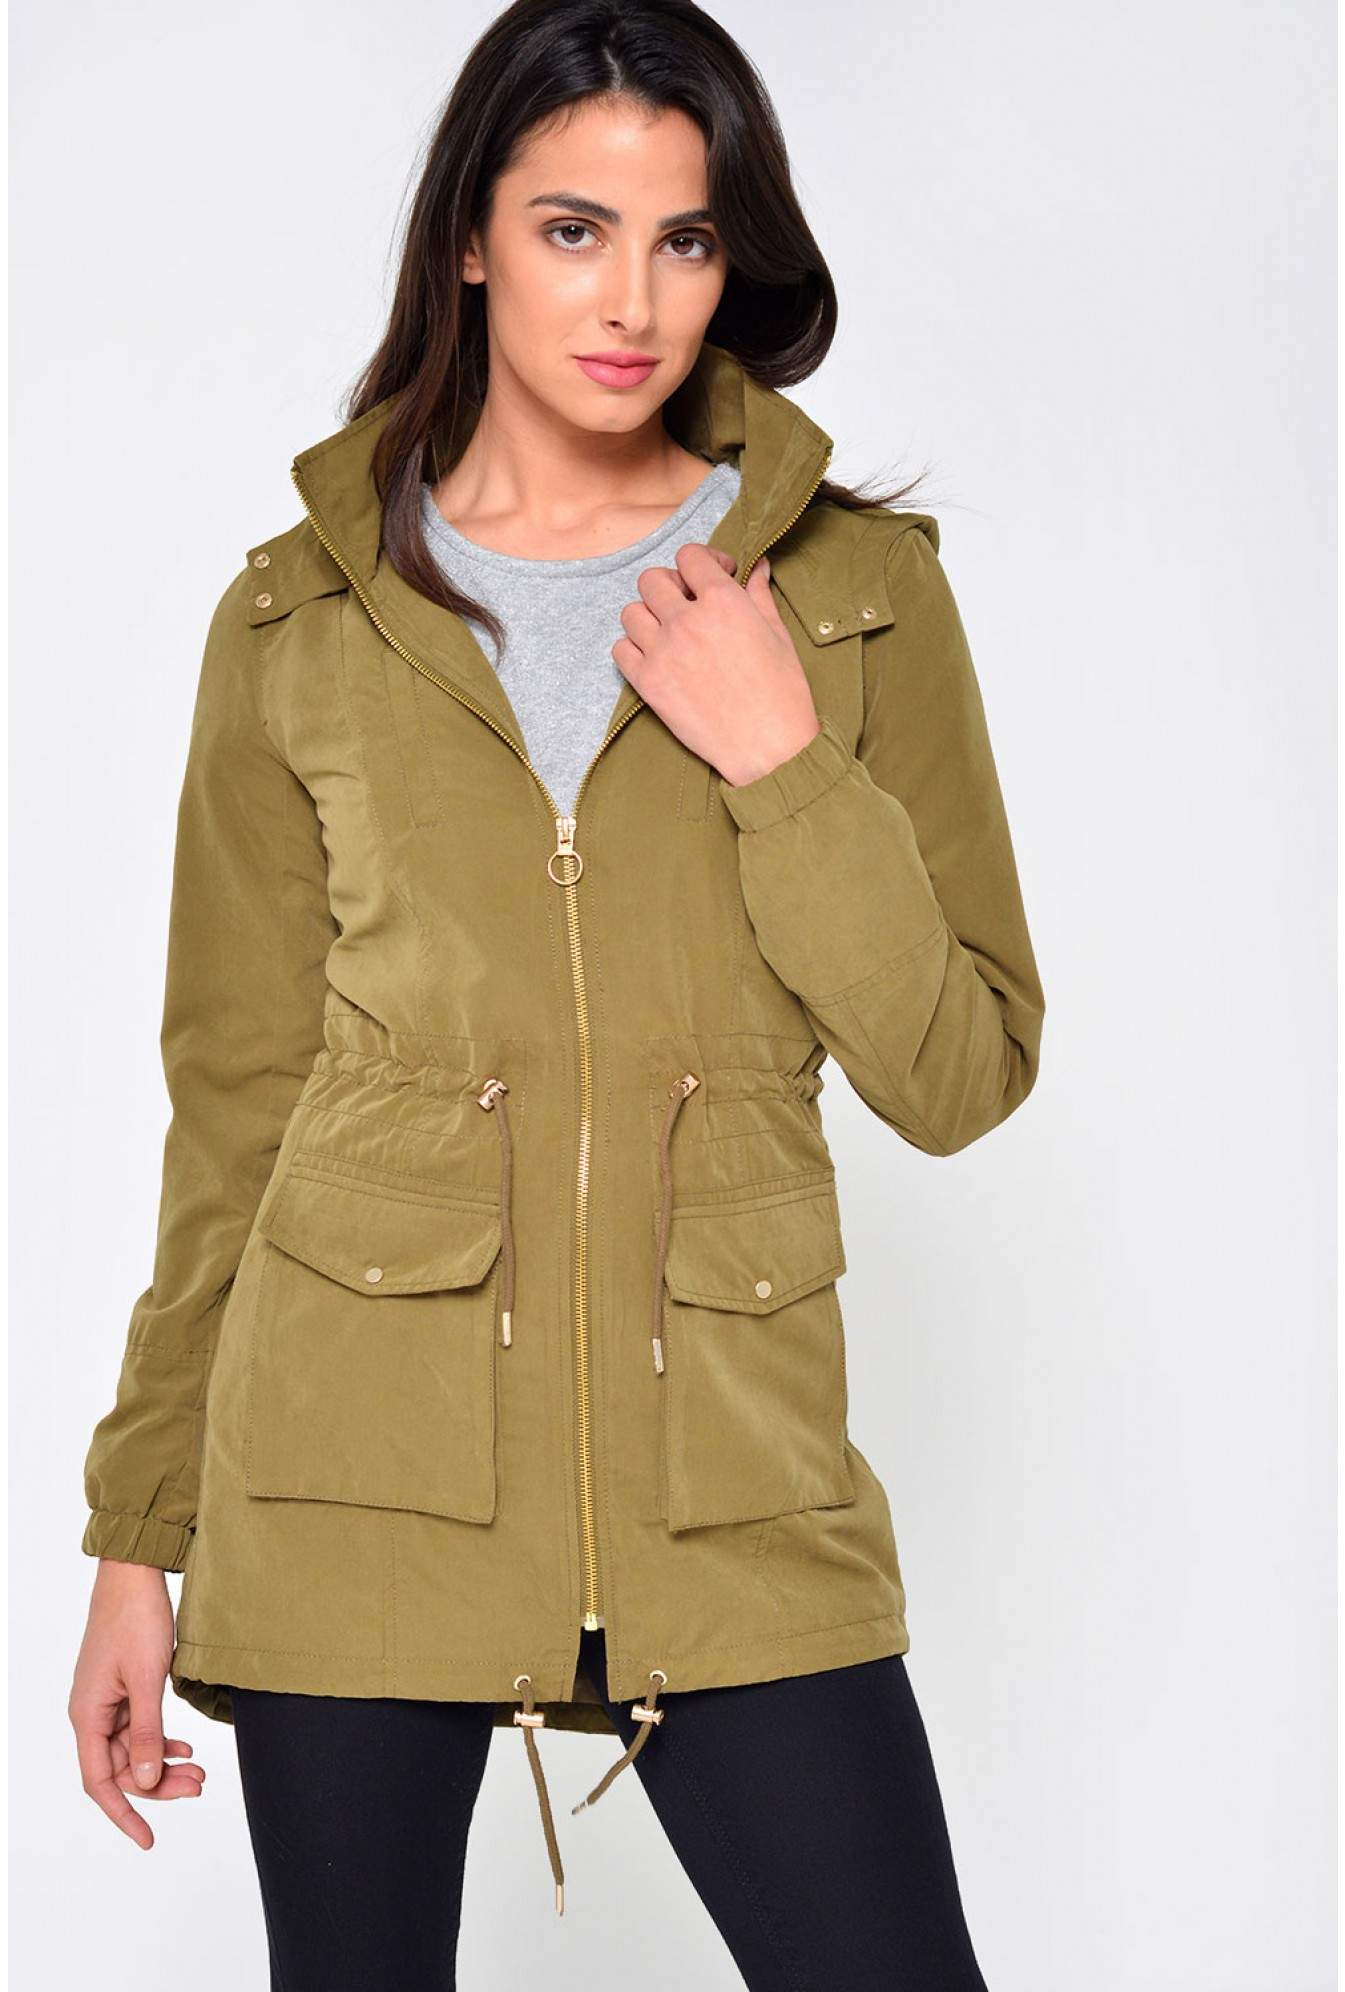 97165e10b2c9 More Views. Starry Longline Parka Jacket in Khaki. Only